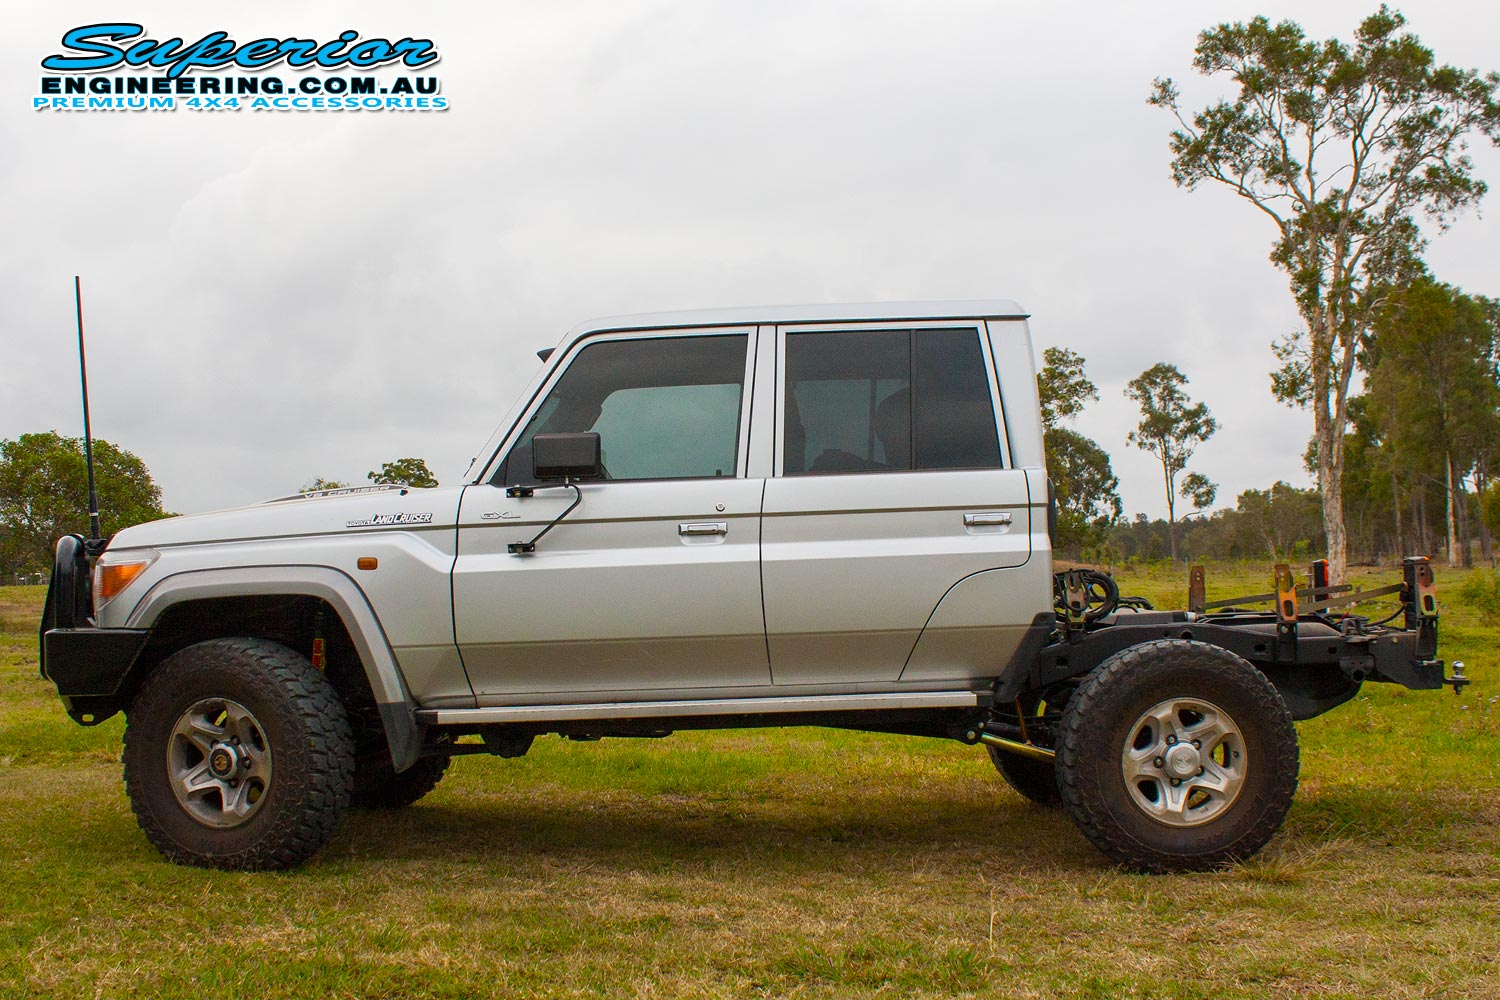 Left side view of the 79 Series Toyota Landcruiser dual cab after fitting a Superior Engineering Coil Conversion Kit